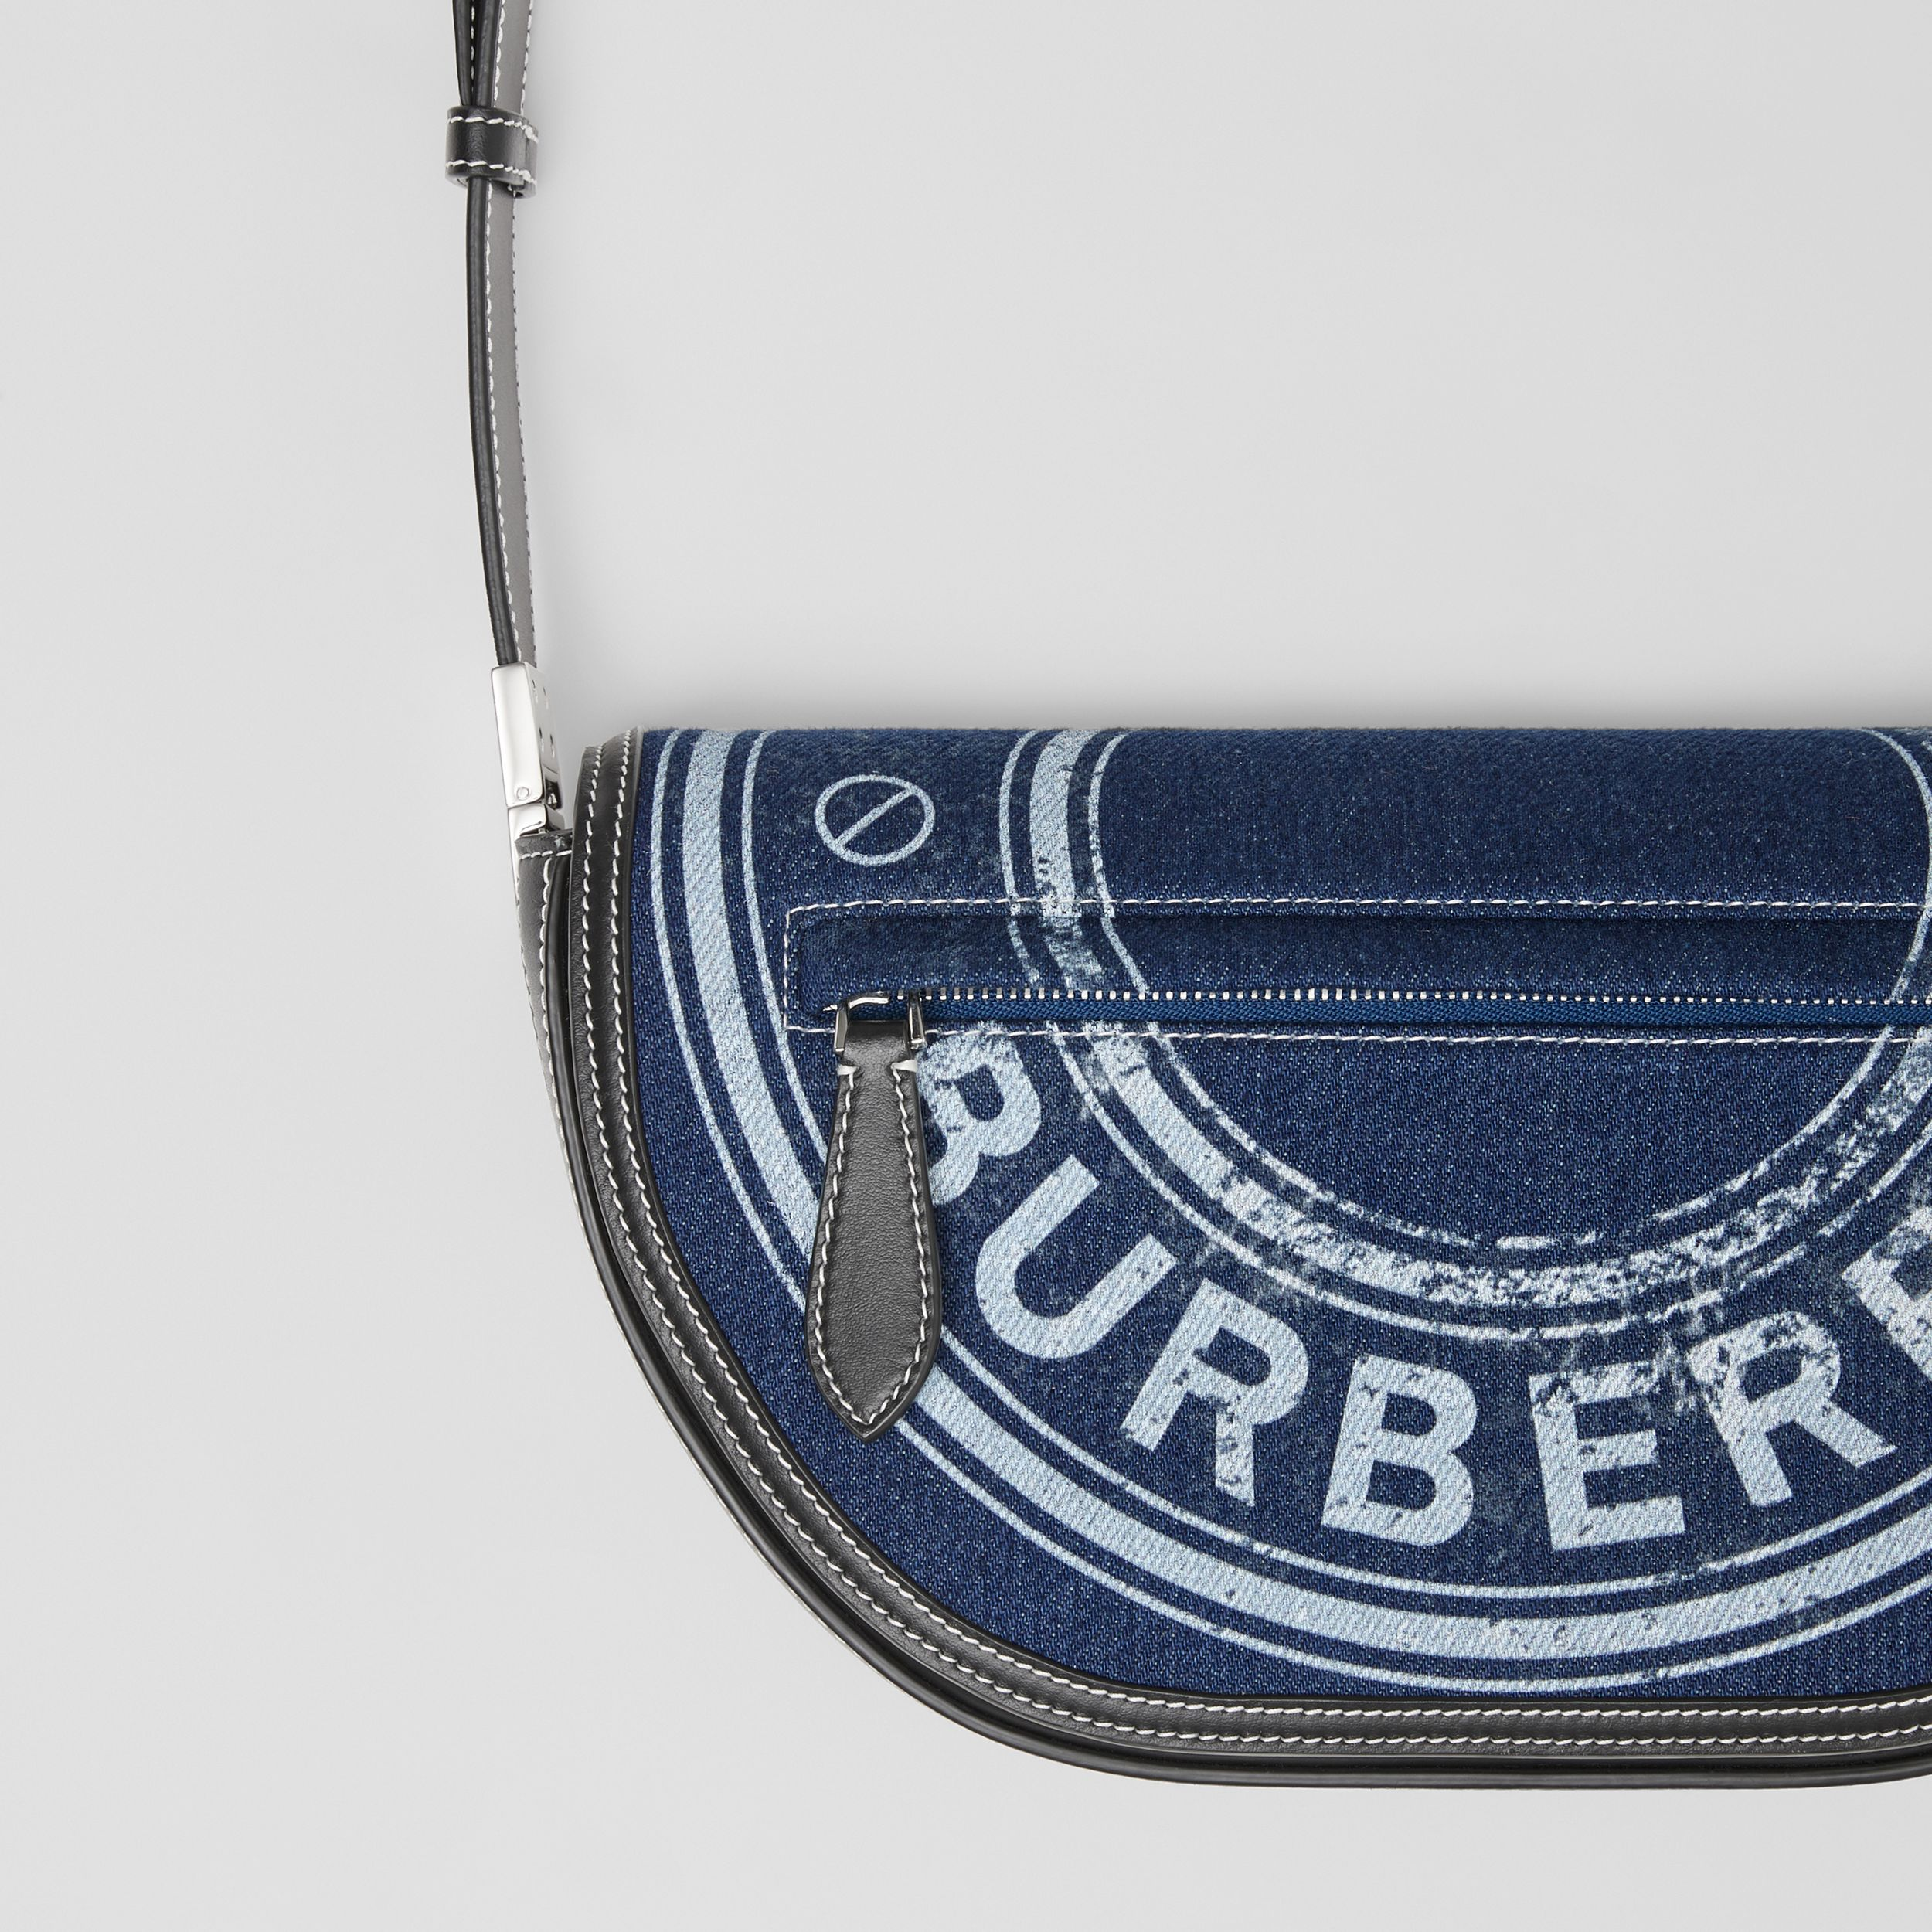 Small Logo Graphic Denim and Leather Olympia Bag in Dark Canvas Blue - Women | Burberry - 2